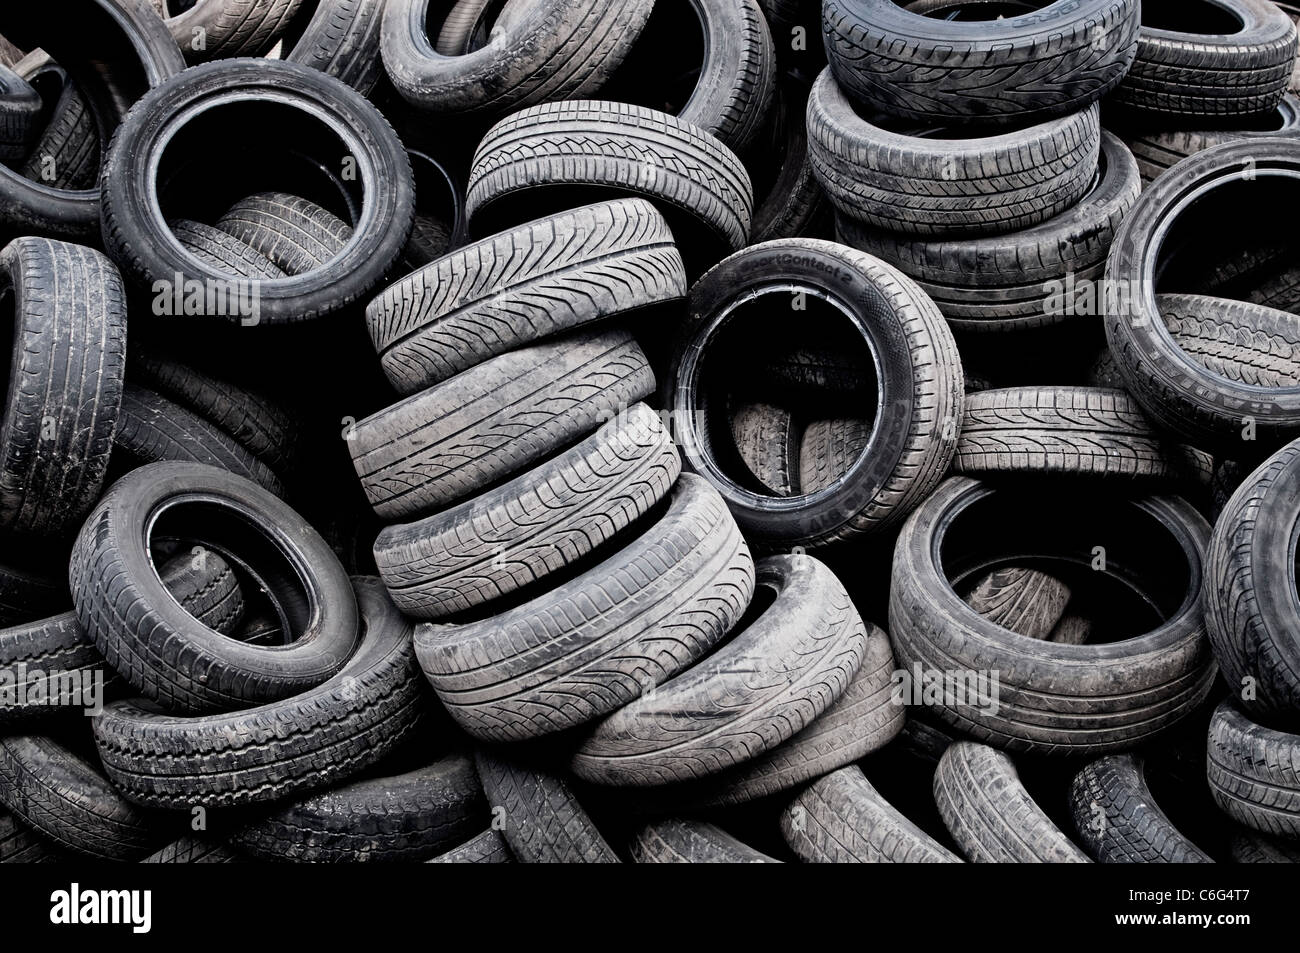 a-pile-of-used-tyres-C6G4T7.jpg